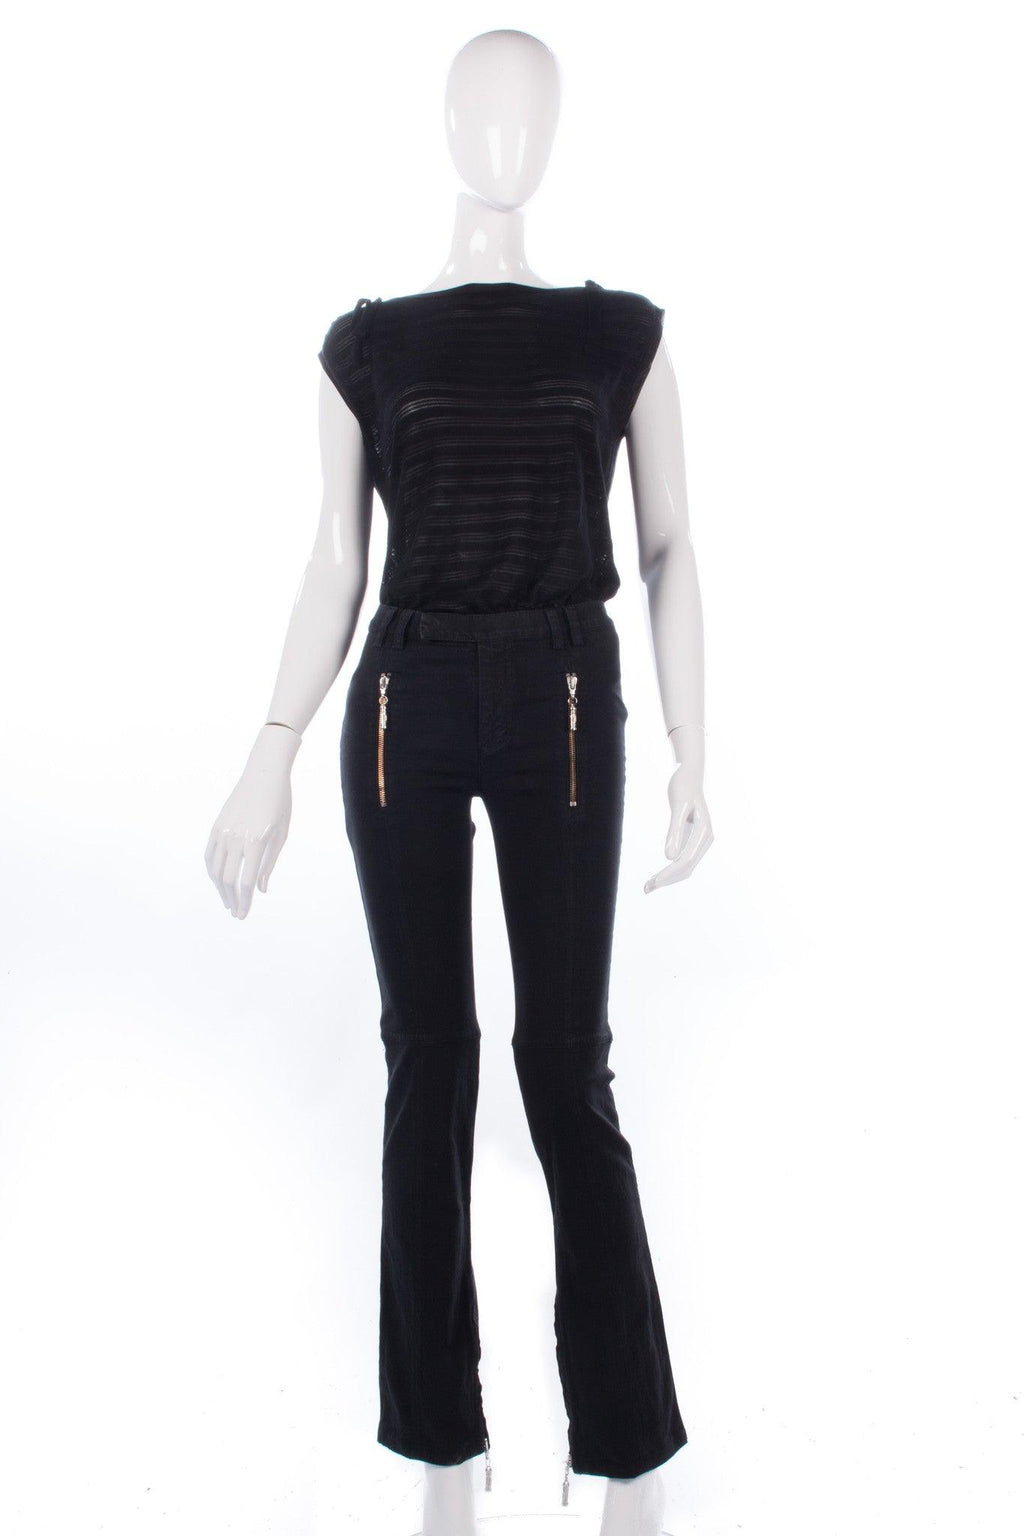 Versace Jeans Signature jeans Black with Bronze and Silver zips. 24 inch waist